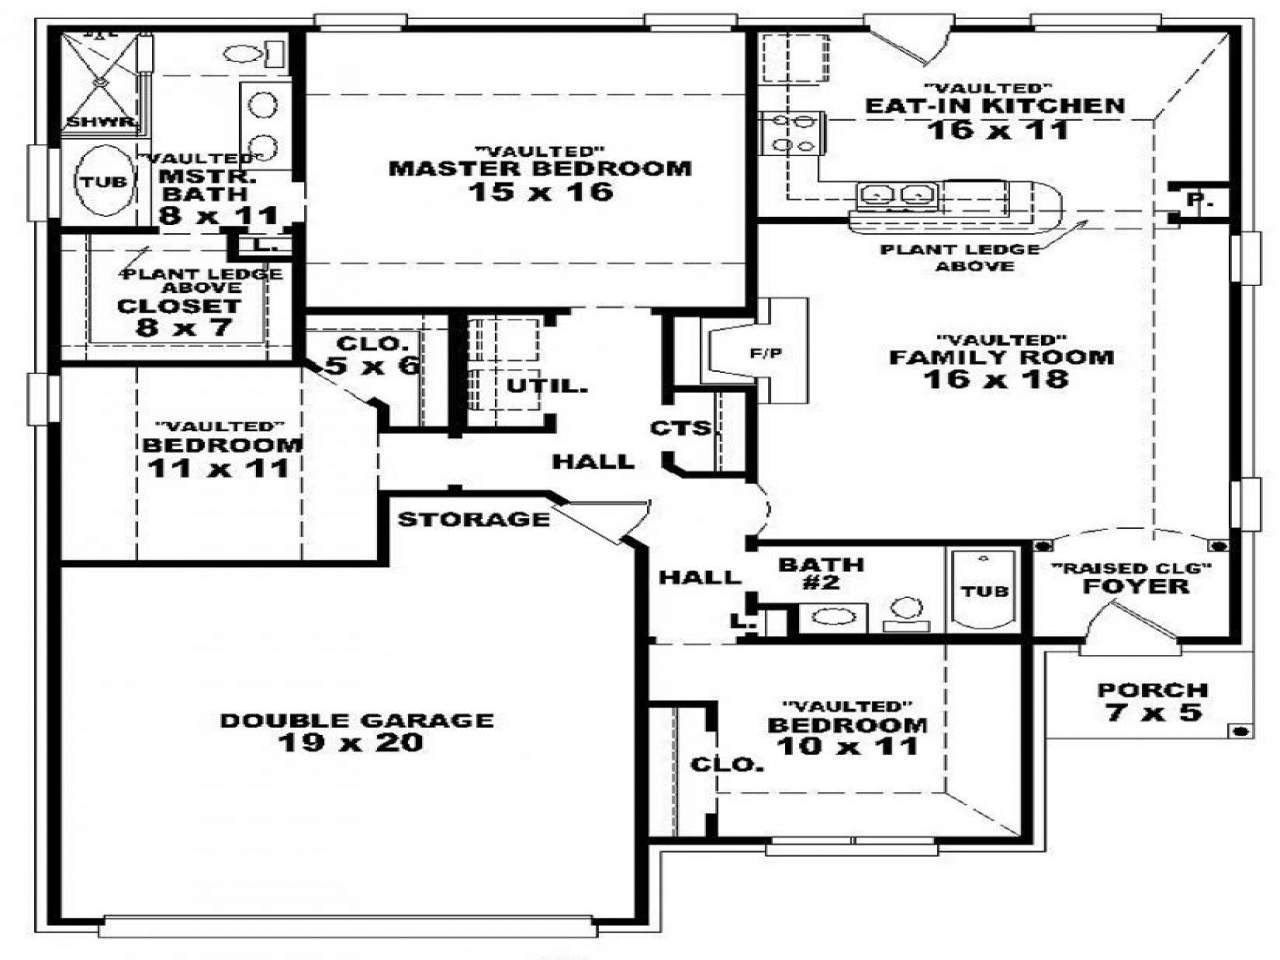 1 Bedroom 2 Bathroom House Plans 3 Bedroom 2 Bath House Plans 1 Level 3 Bedroom 2 Bath 1